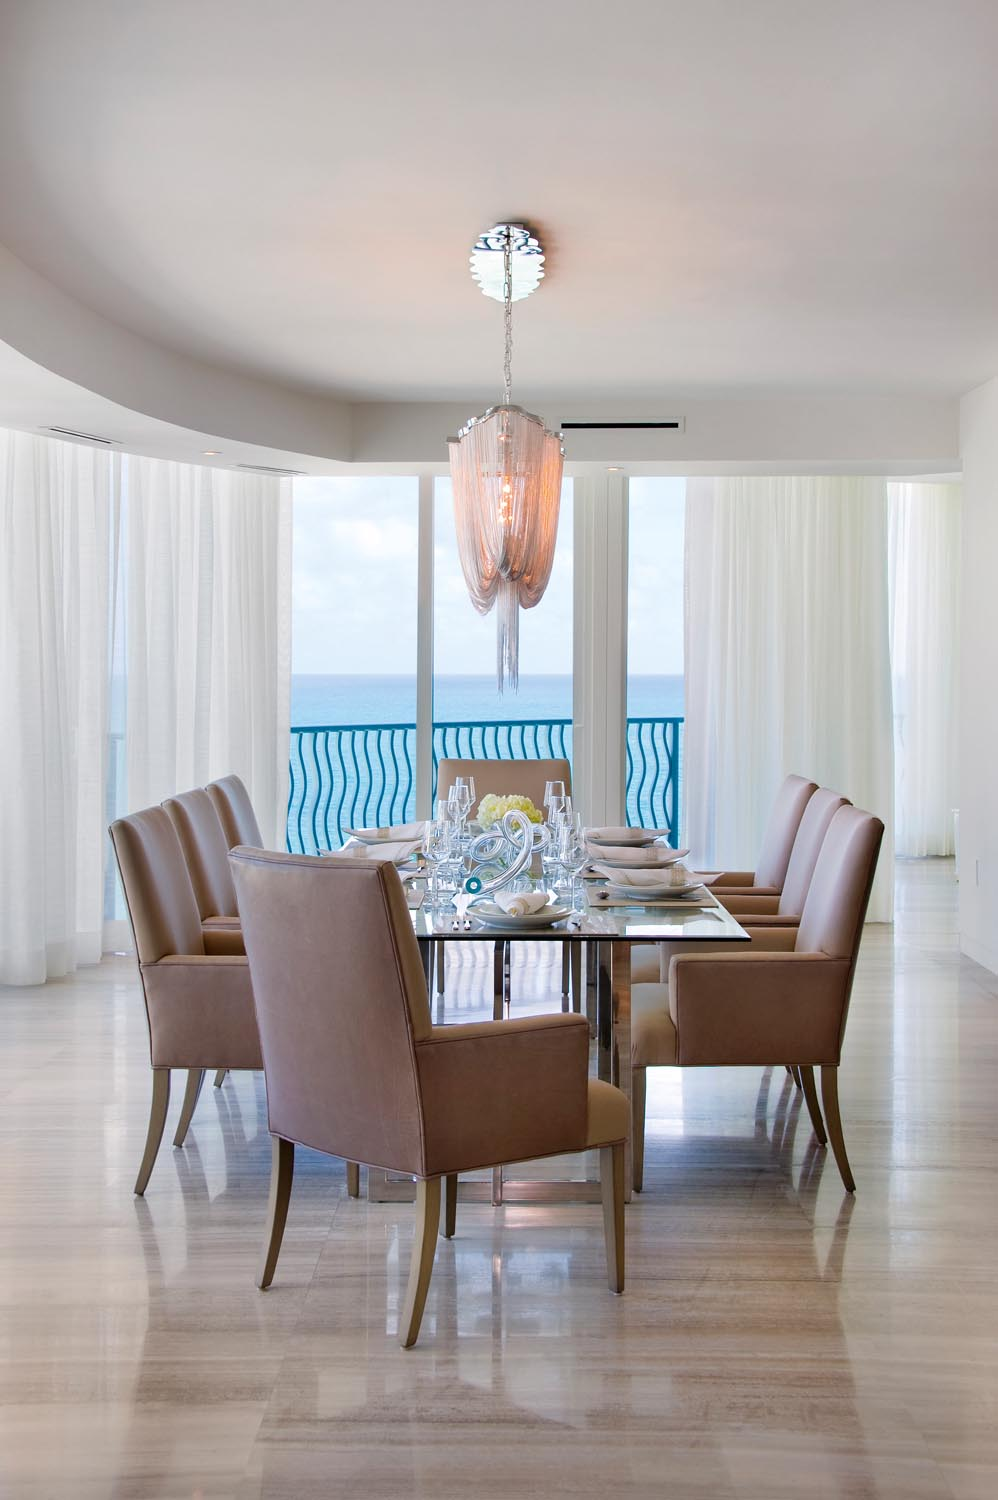 A unique chandelier brings a high-end element to the dining room